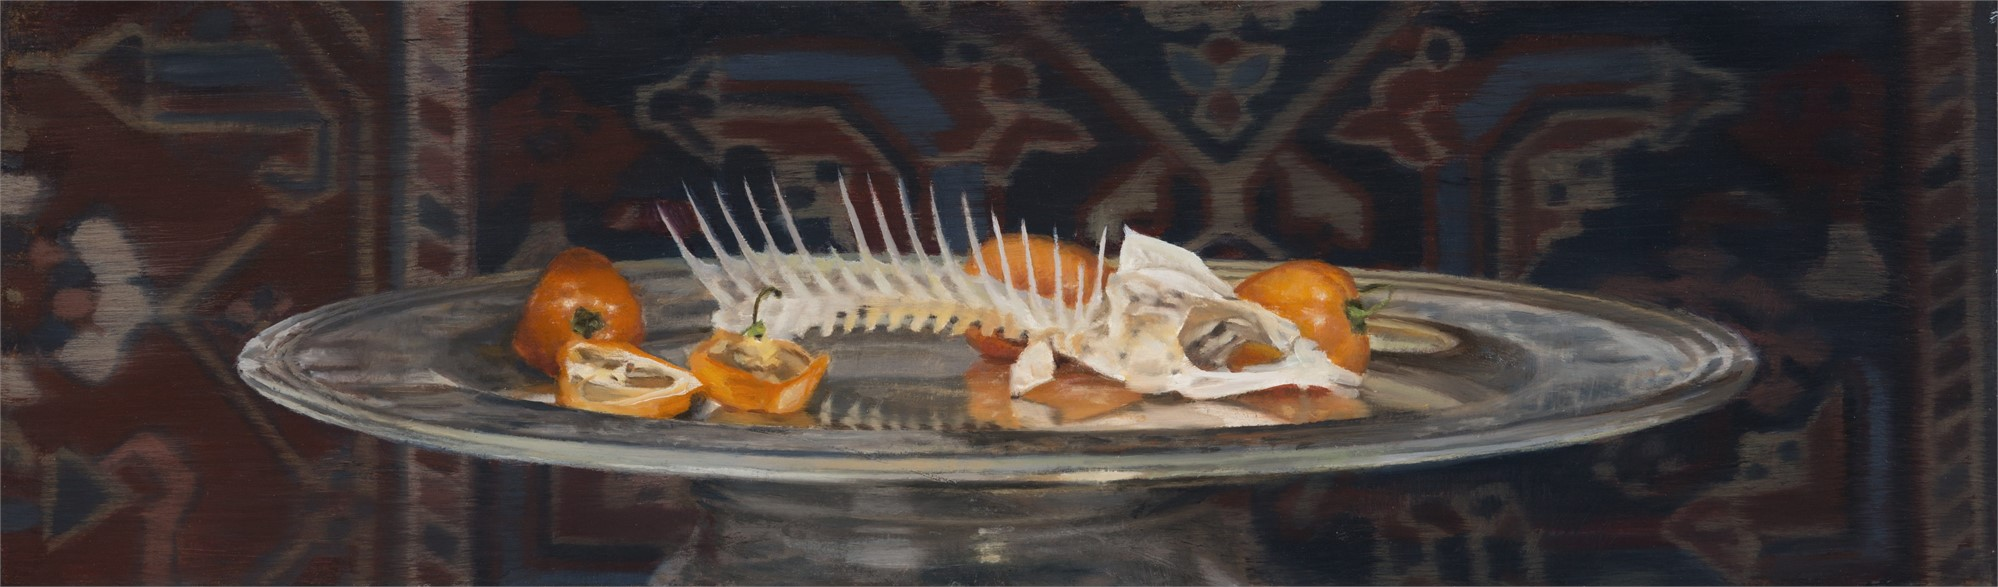 Fish Skeleton and Habaneros by Gregory Block